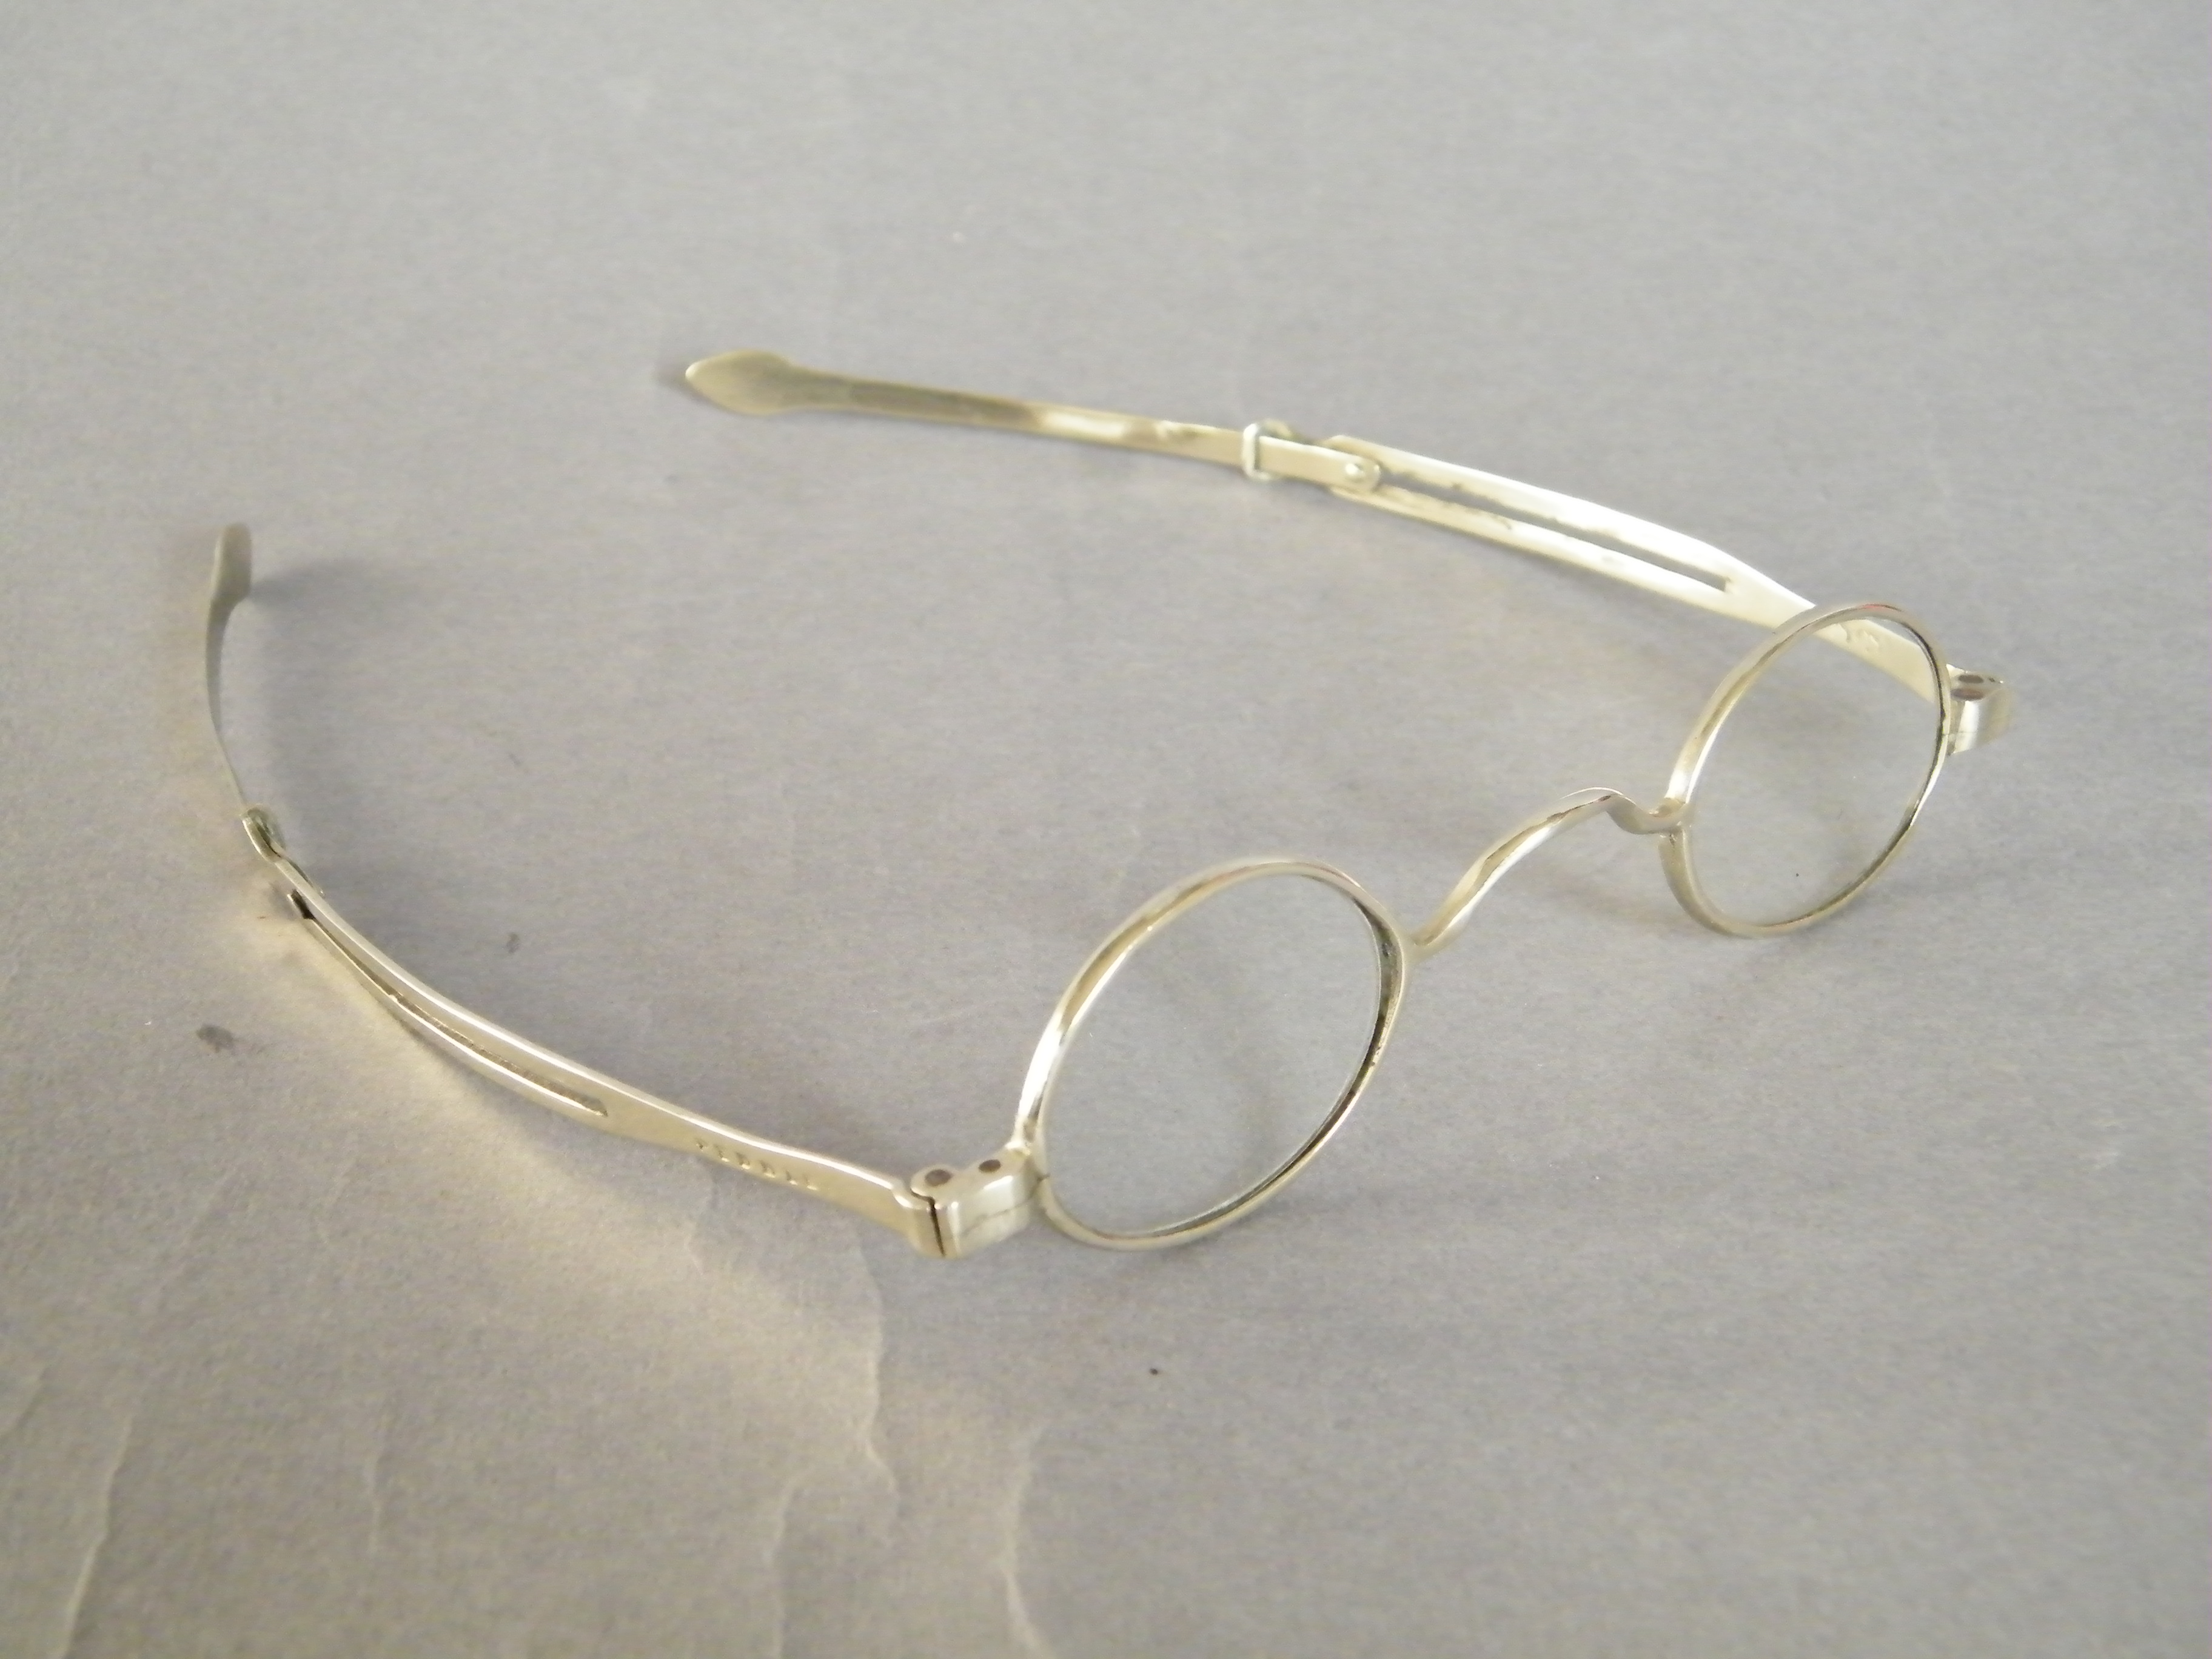 #1638  Cased Early Victorian Spectacles with Rock Crystal Lenses by John Holmes, London, circa 1838